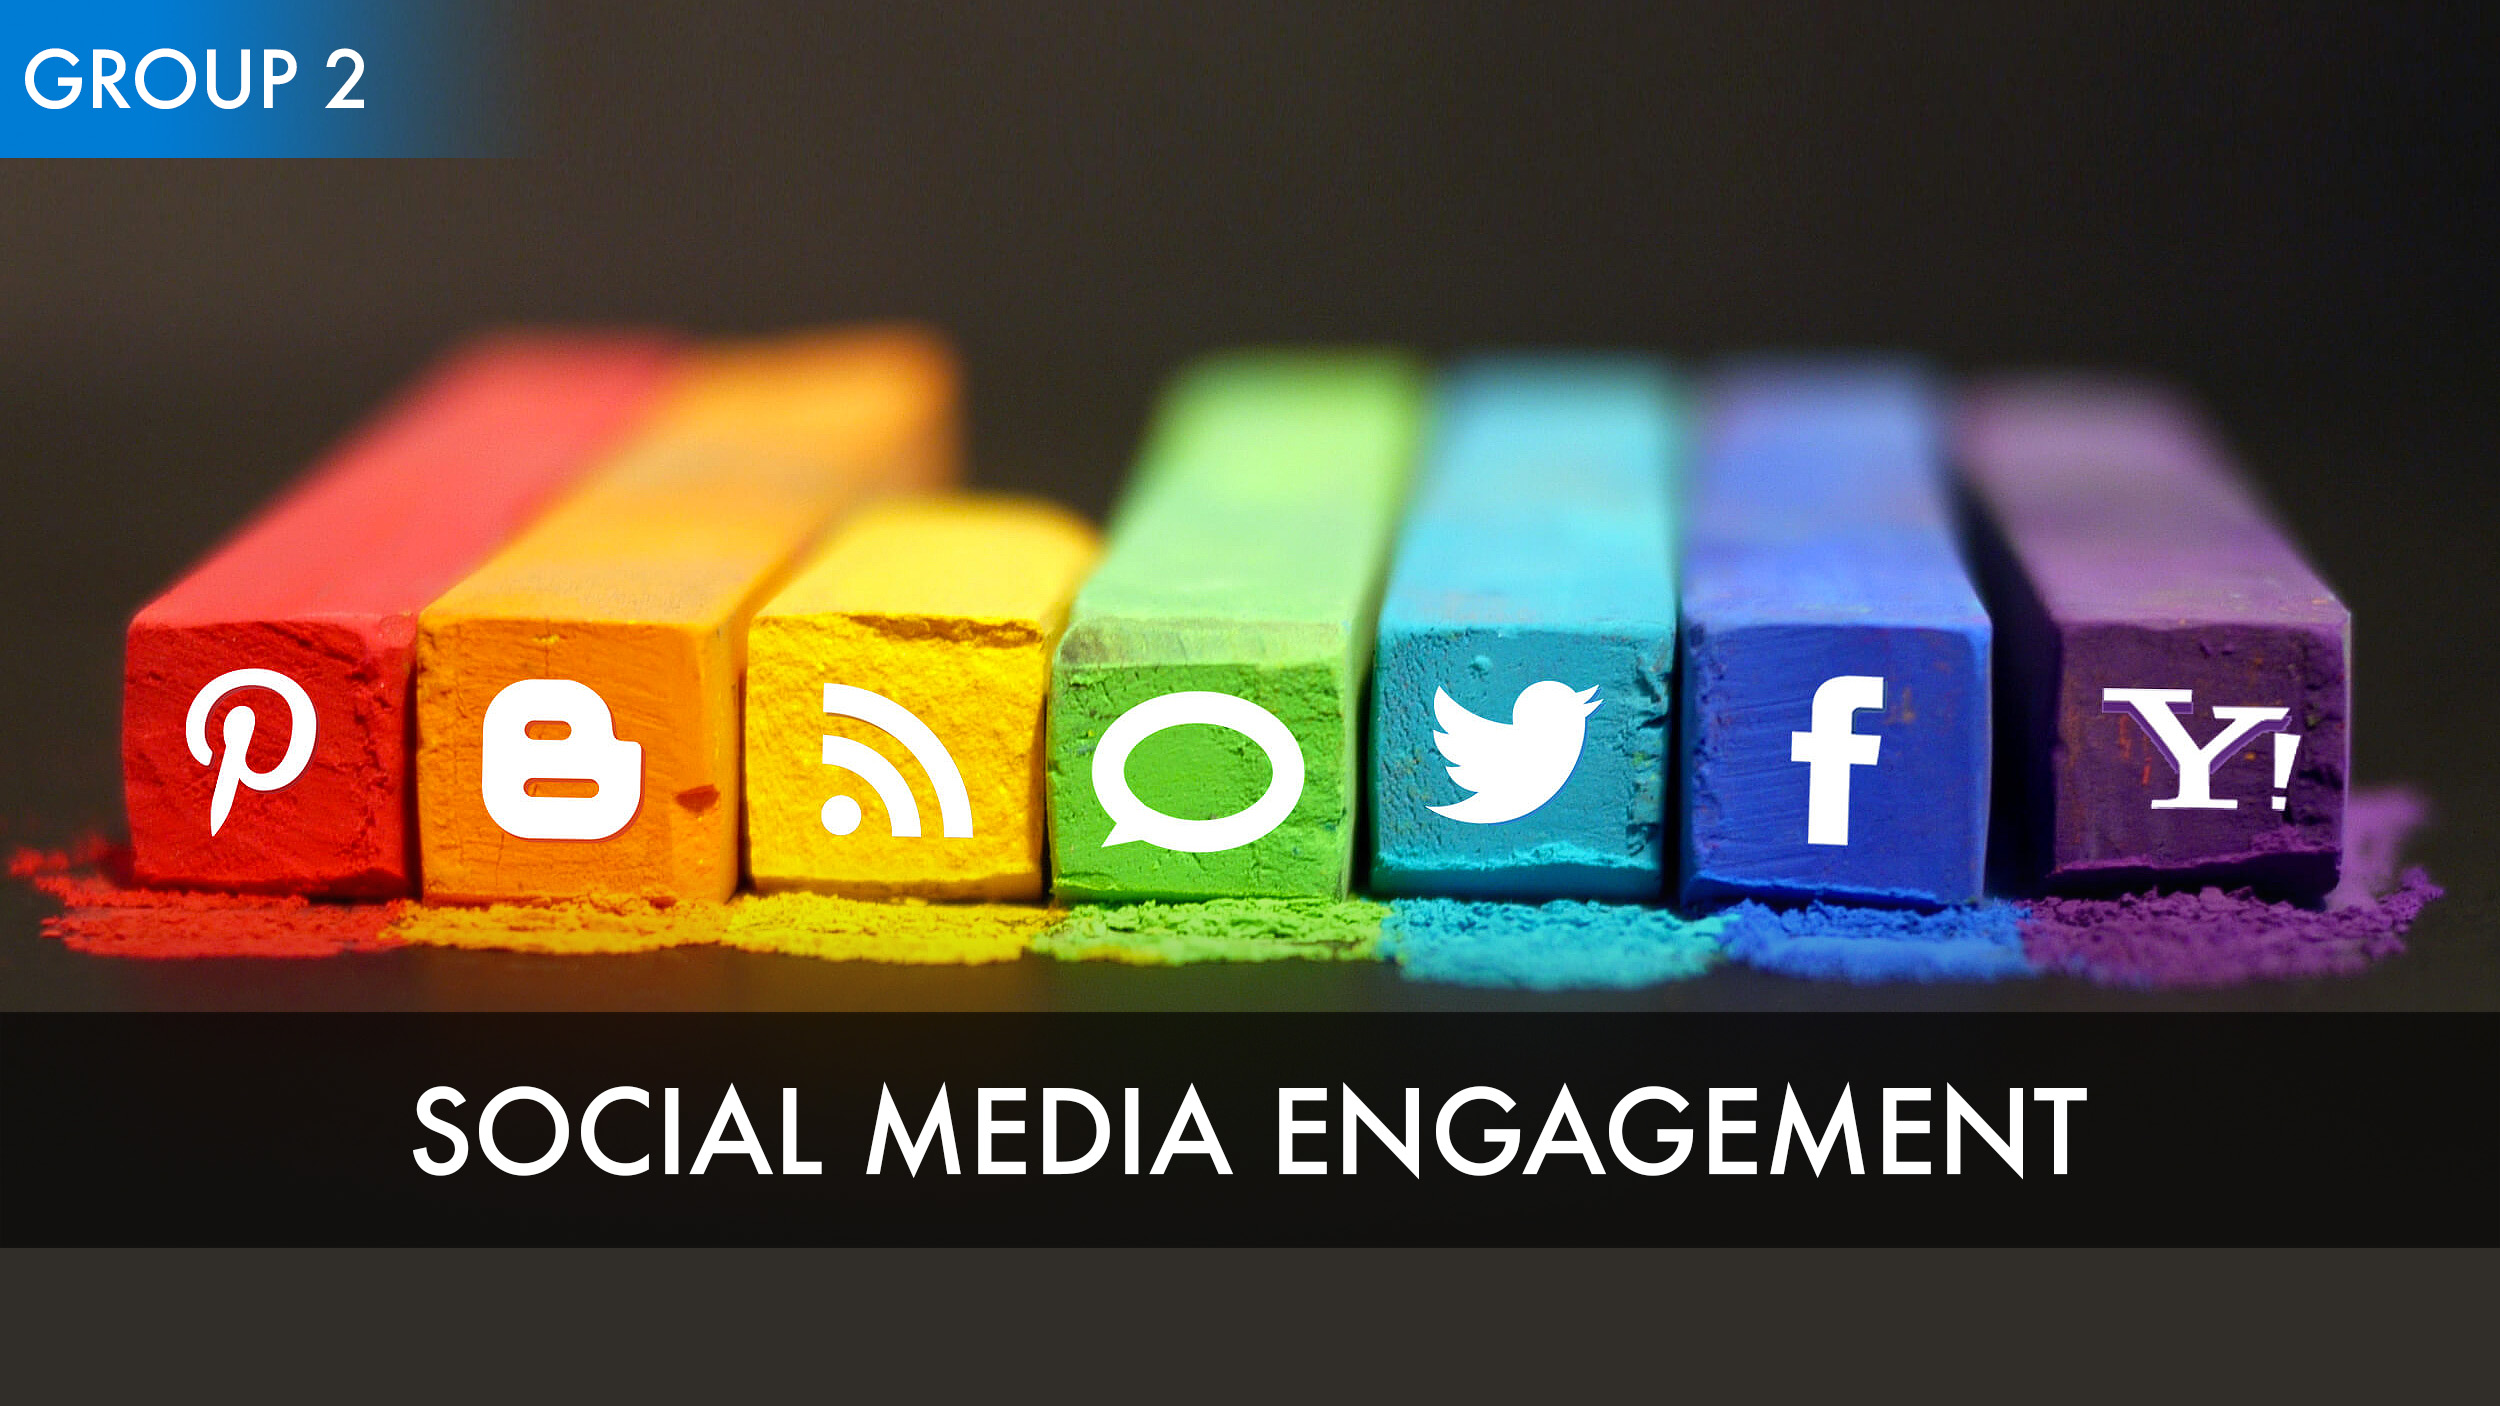 Social Media Engagement (Group 2).jpg